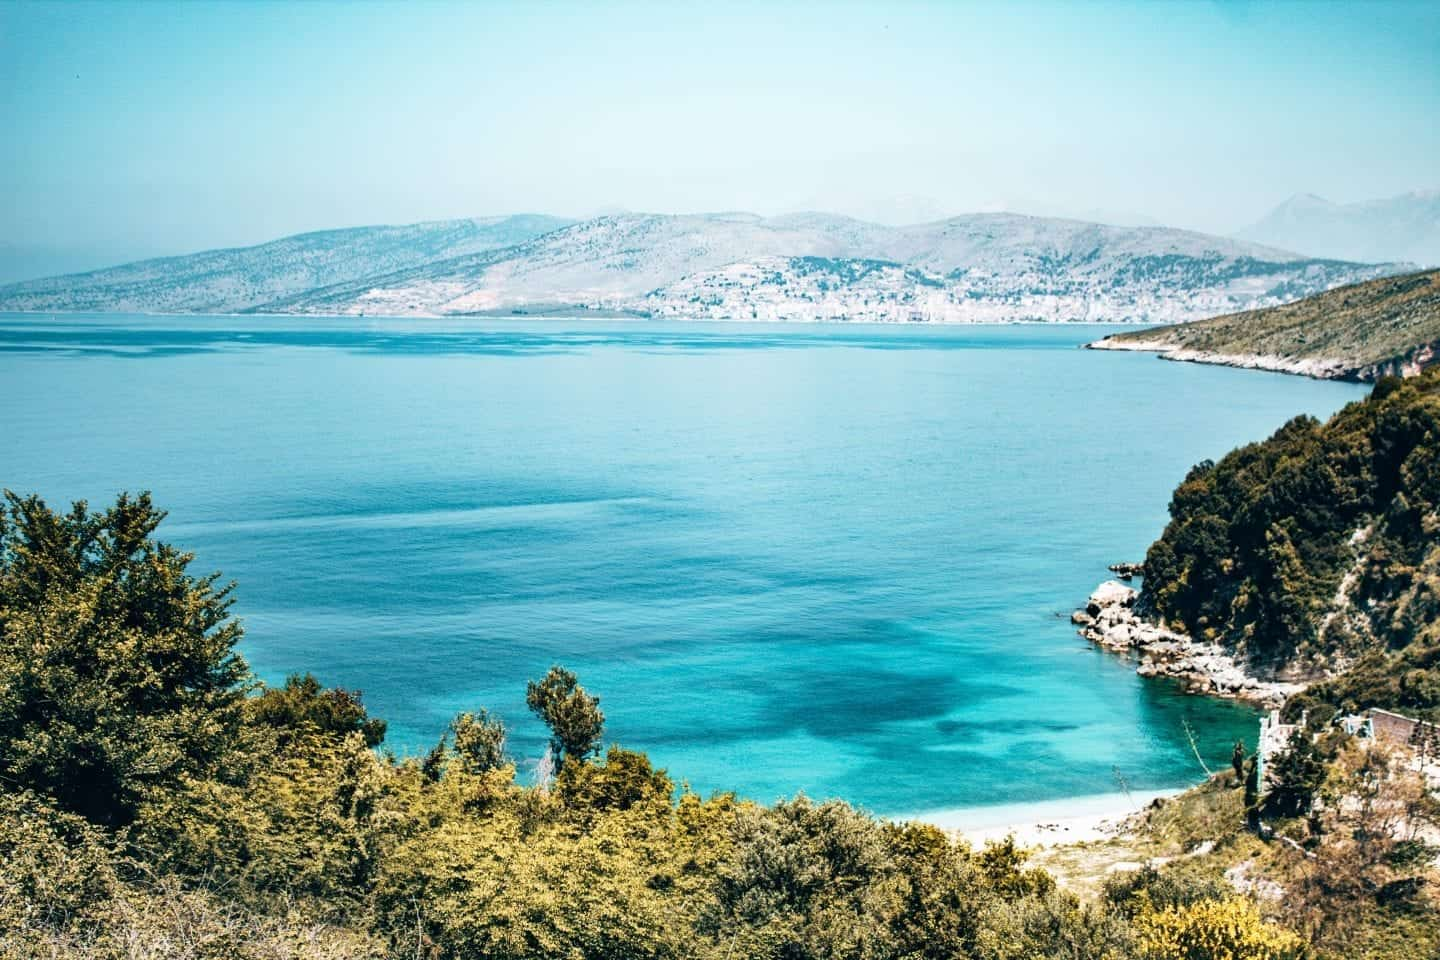 Win 7-nights' Accommodation in Saranda, Albania For JUST $1!